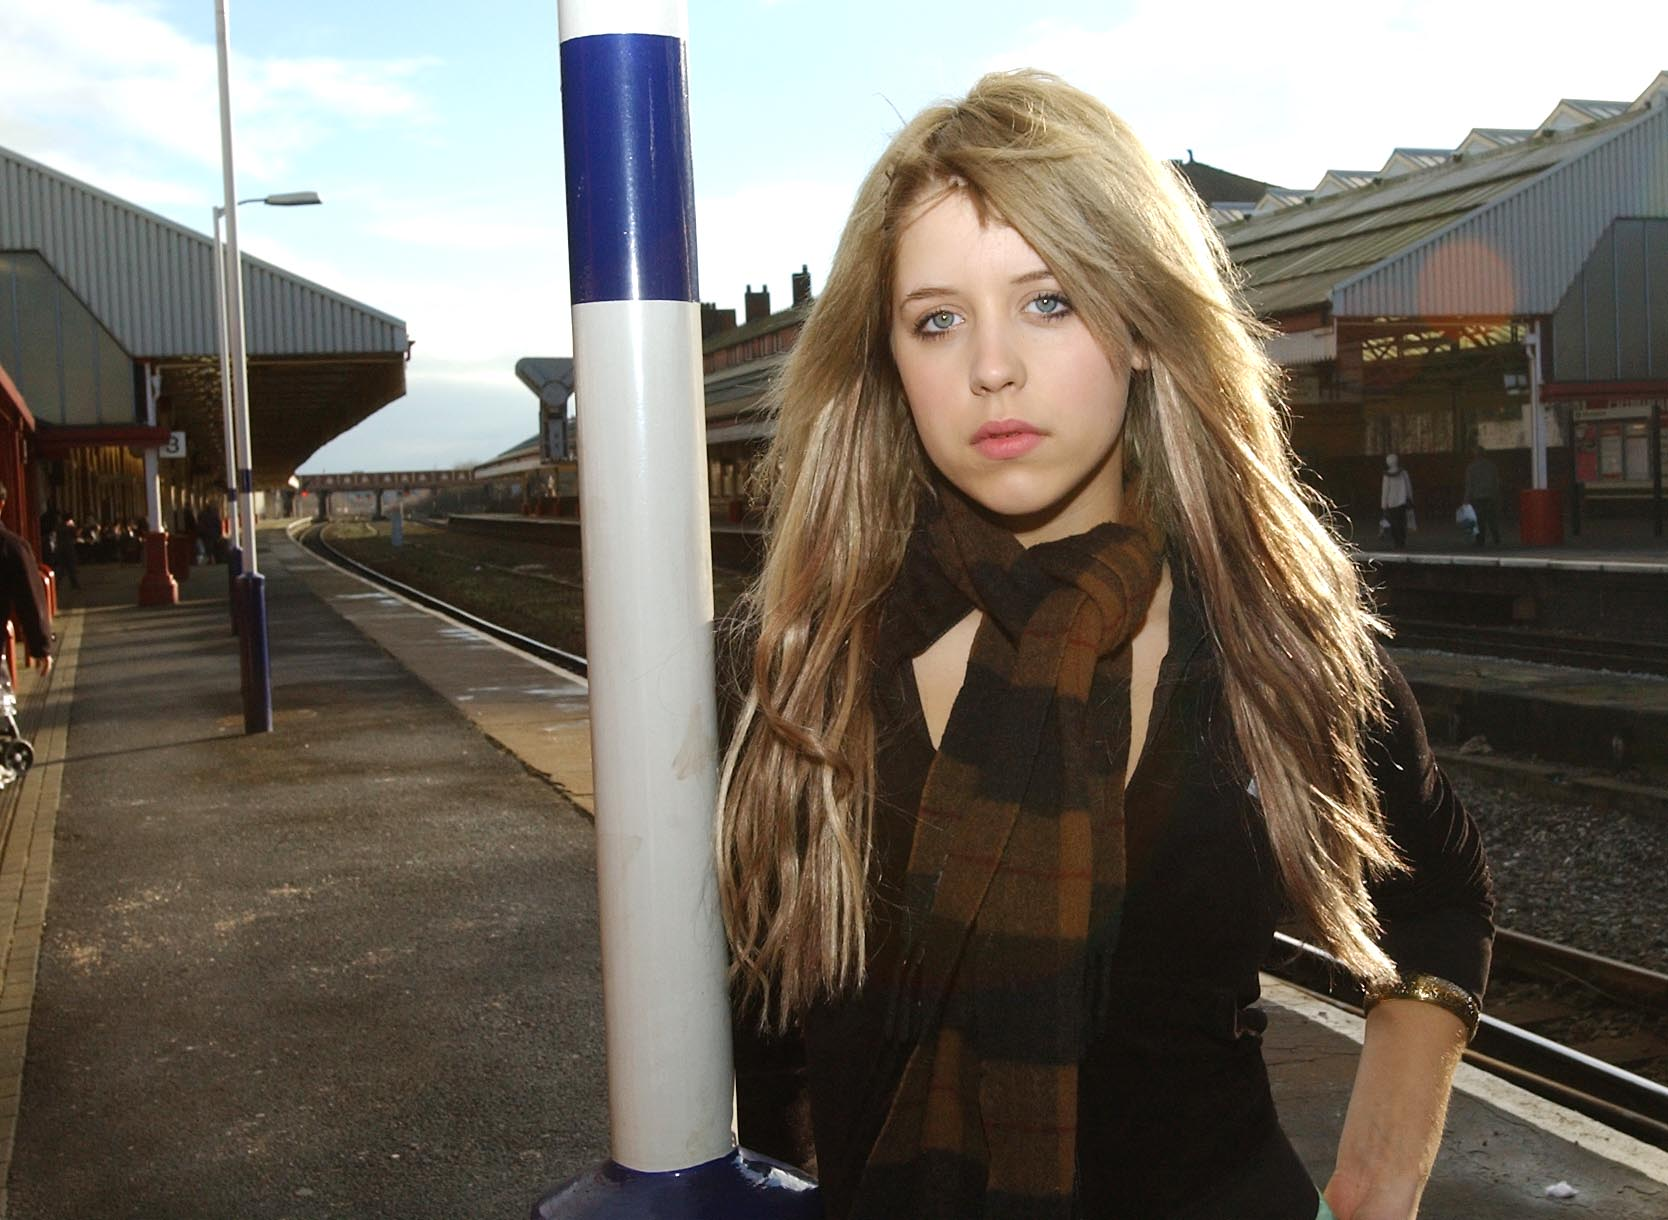 In pictures: the day Peaches Geldof visited Bolton